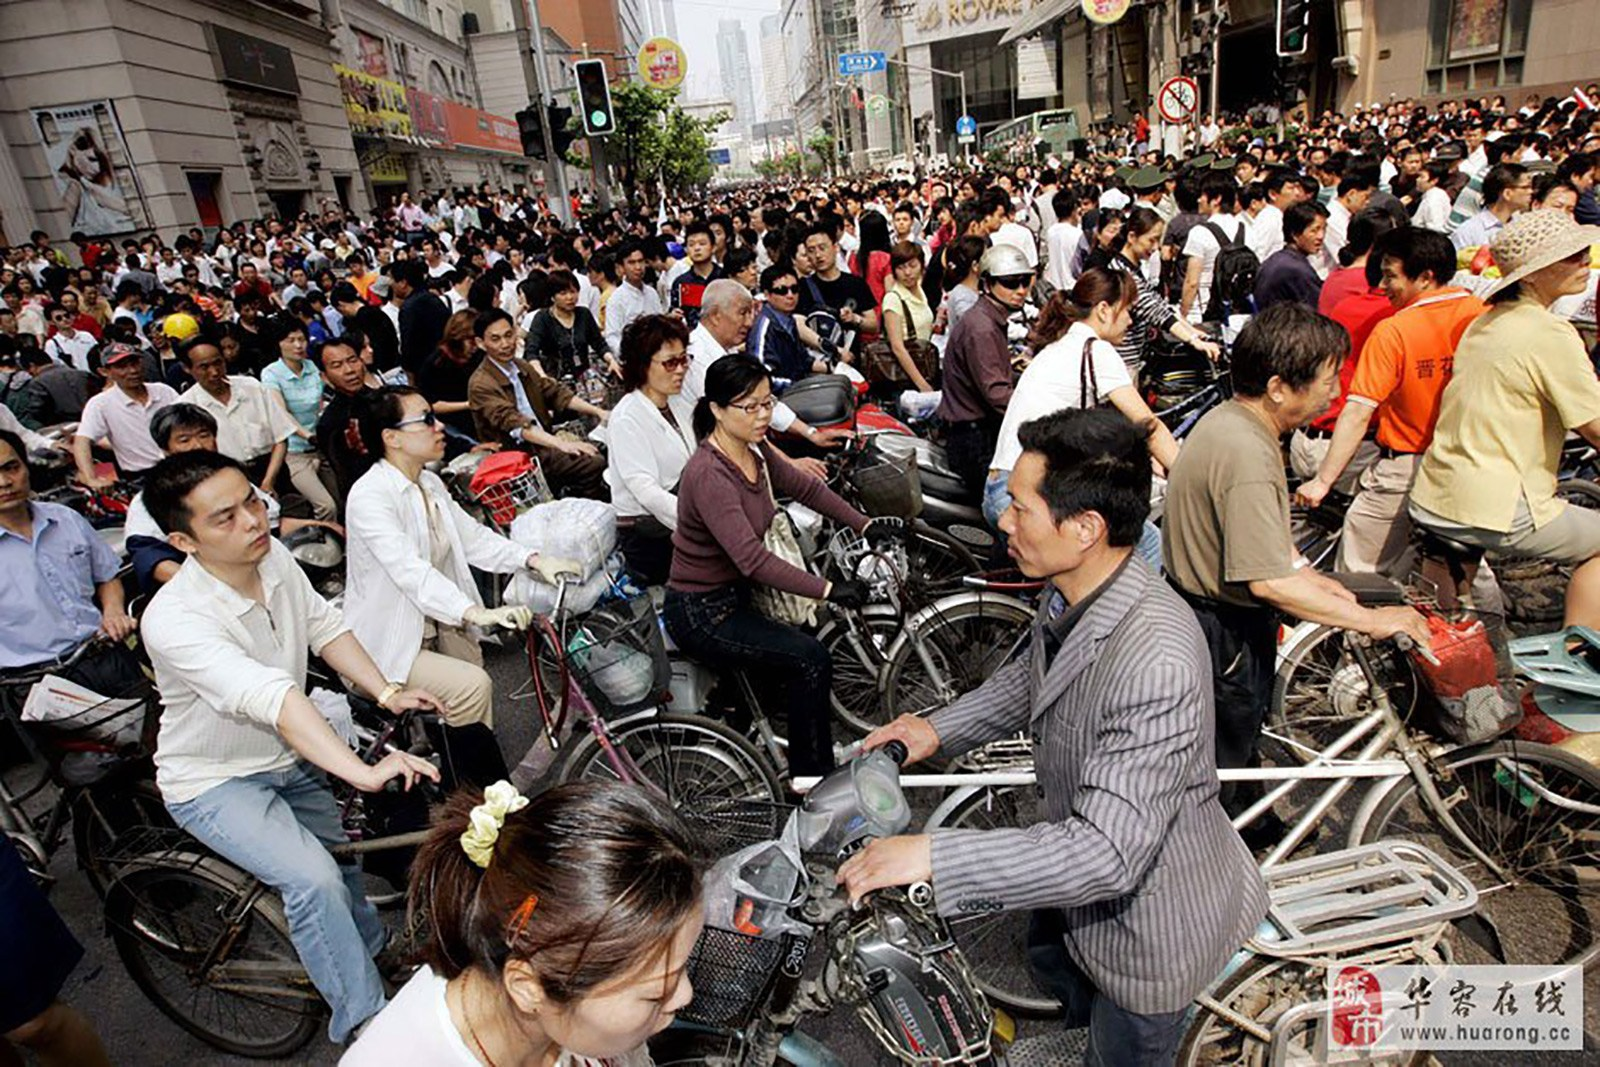 By Uncle Dave's calculations a lot of people ride bicycles in China.